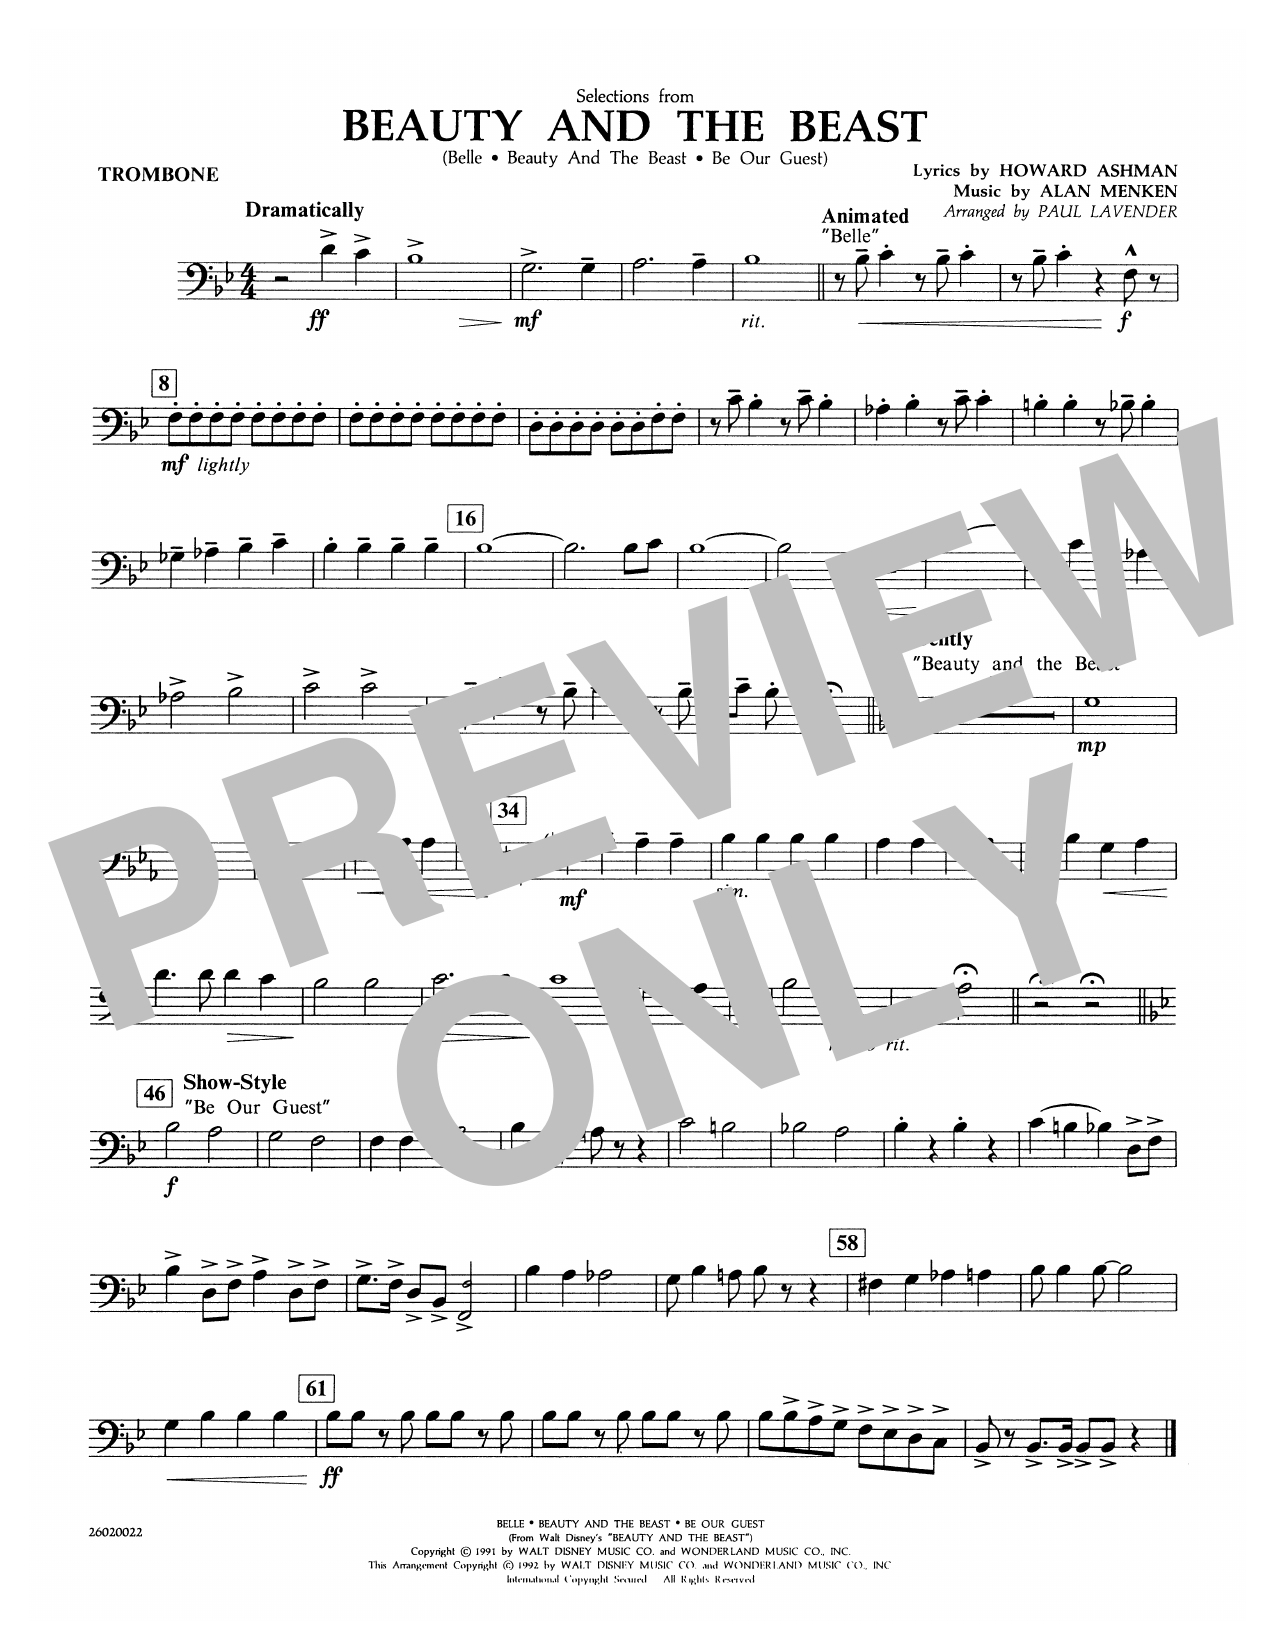 Selections from Beauty and the Beast - Trombone Sheet Music